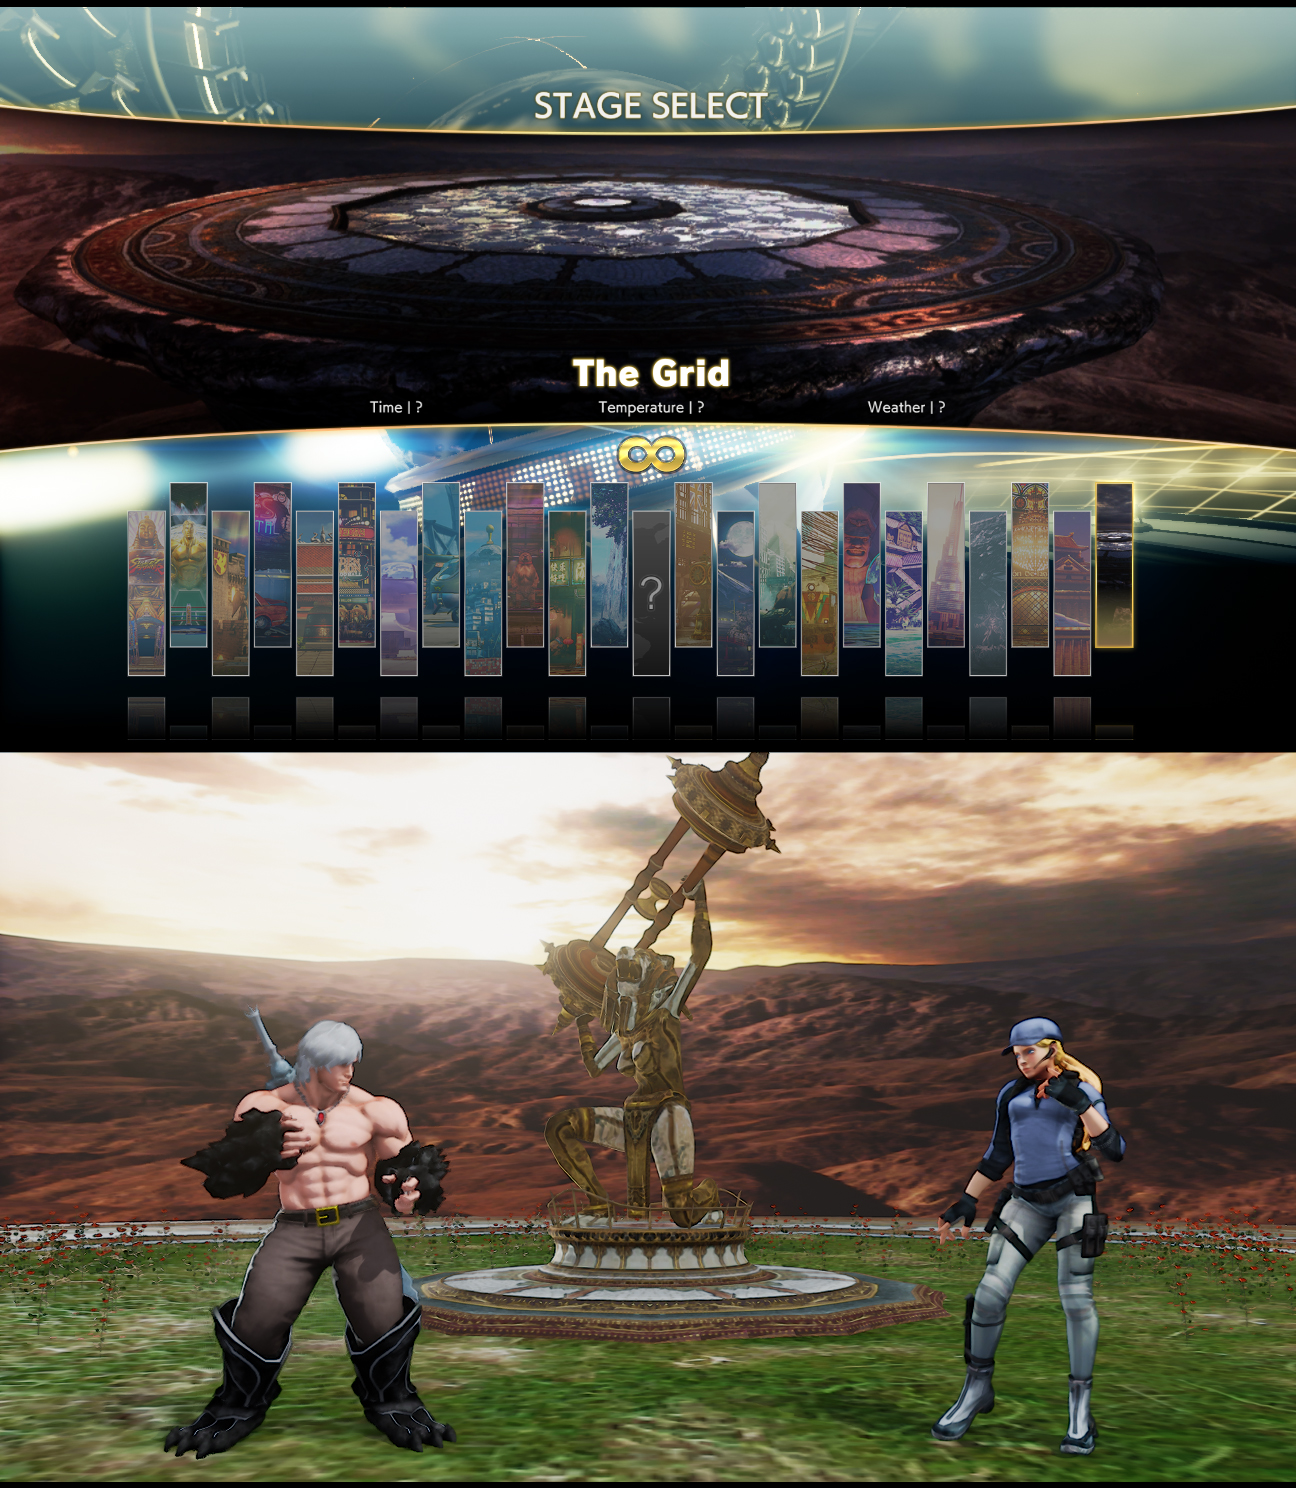 SFVAE Bloody Place (Replace The Grid)